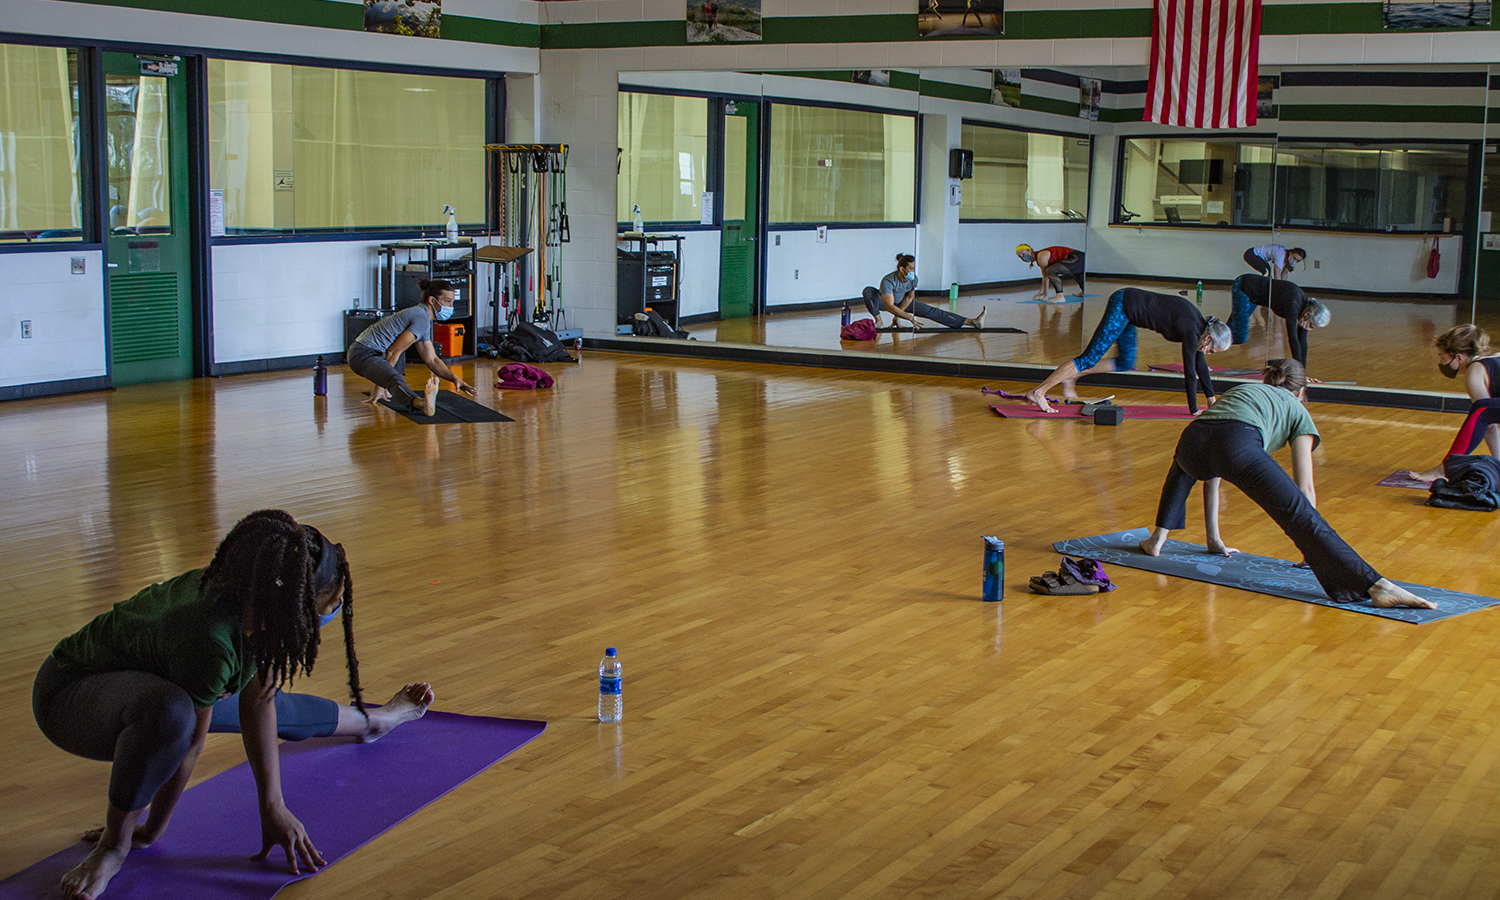 Sean Roulan leads a Saturday morning yoga class at the Bristol Field House.